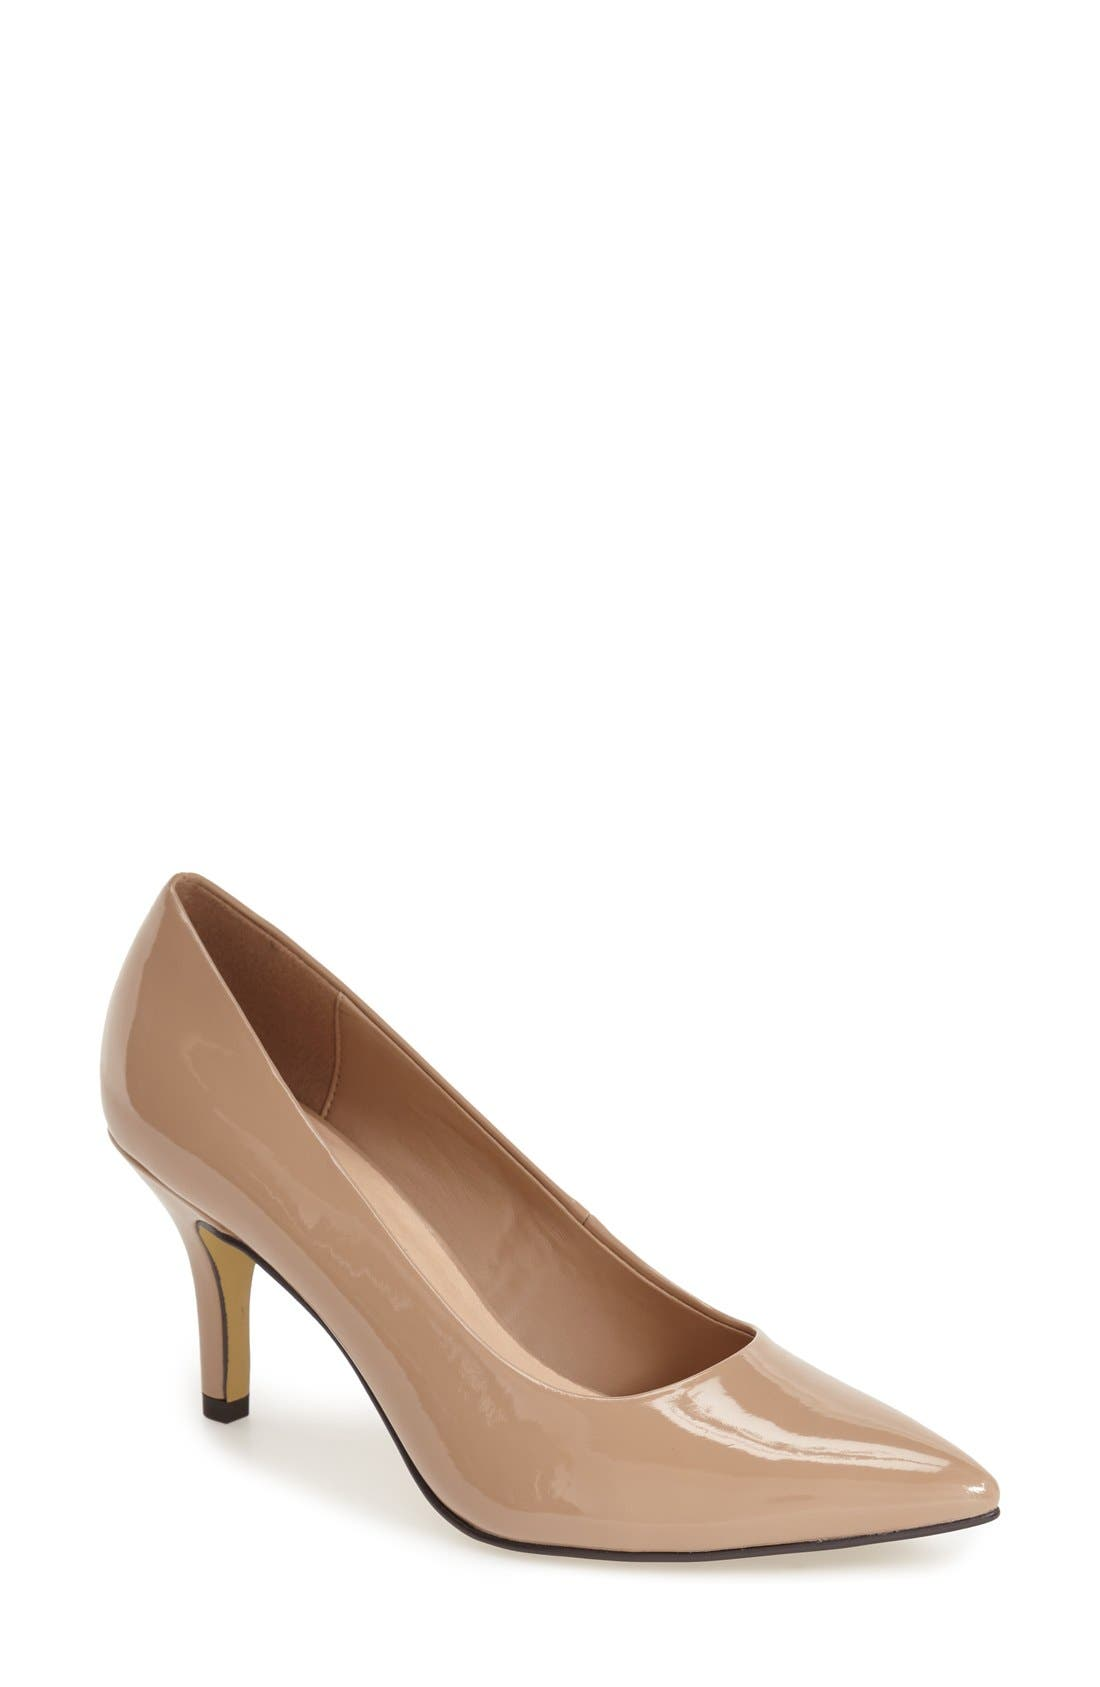 Main Image - Bella Vita 'Define' Pointy Toe Pump (Women)